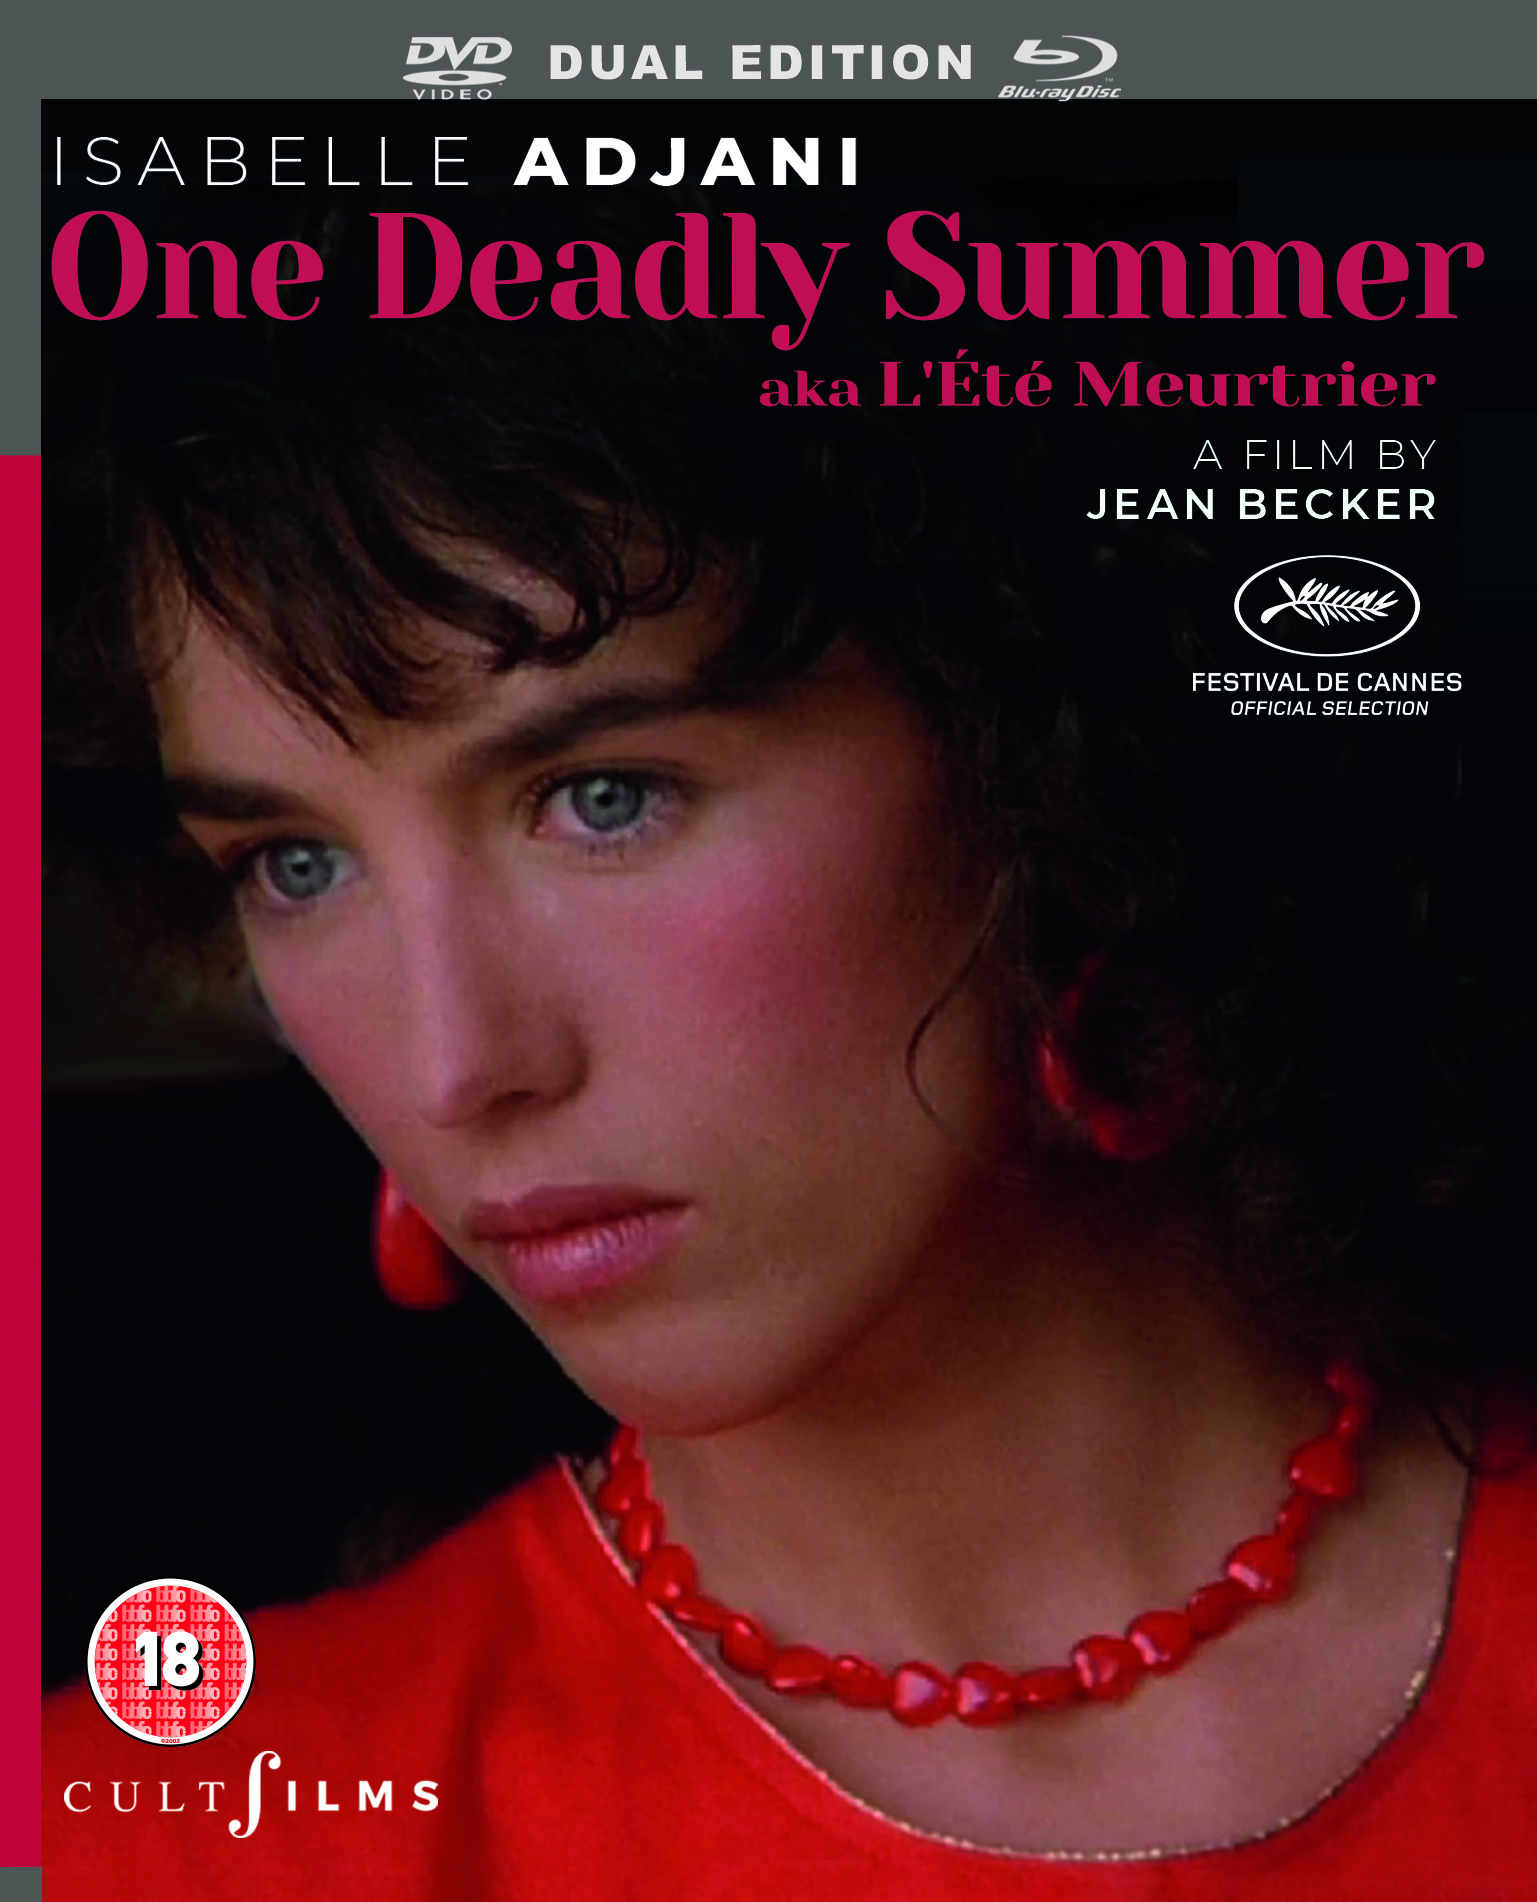 CultFilms presents Isabelle Adjani in ONE DEADLY SUMMER on Dual Format Blu-ray/DVD 29 July